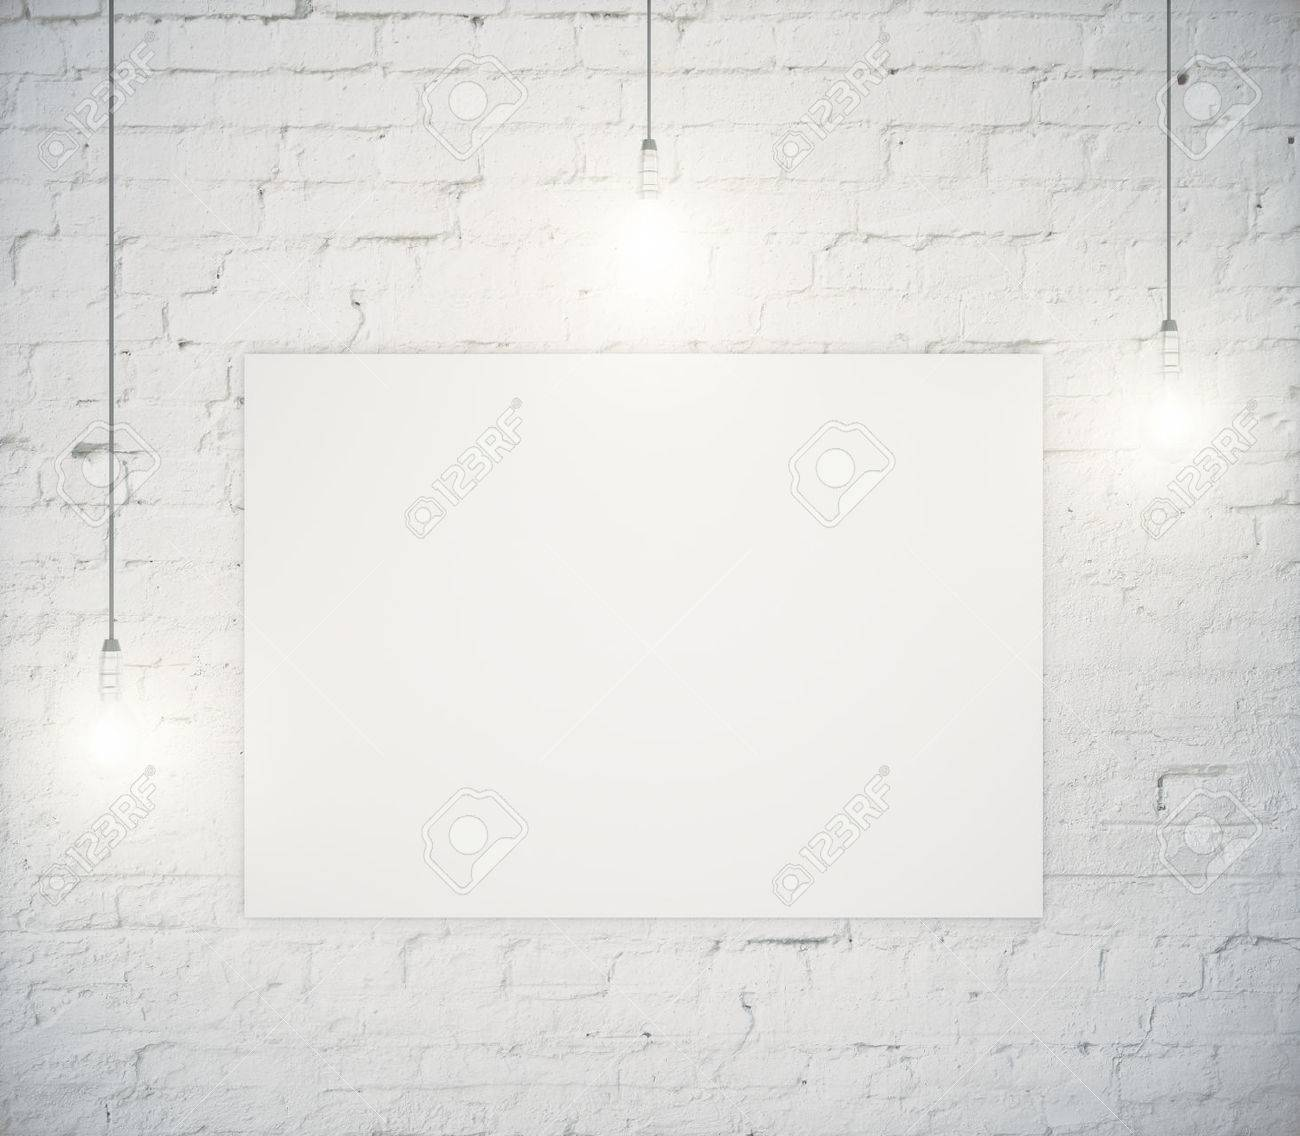 Blank poster hanging on a white brick wall with three light bulbs blank poster hanging on a white brick wall with three light bulbs mock up aloadofball Images